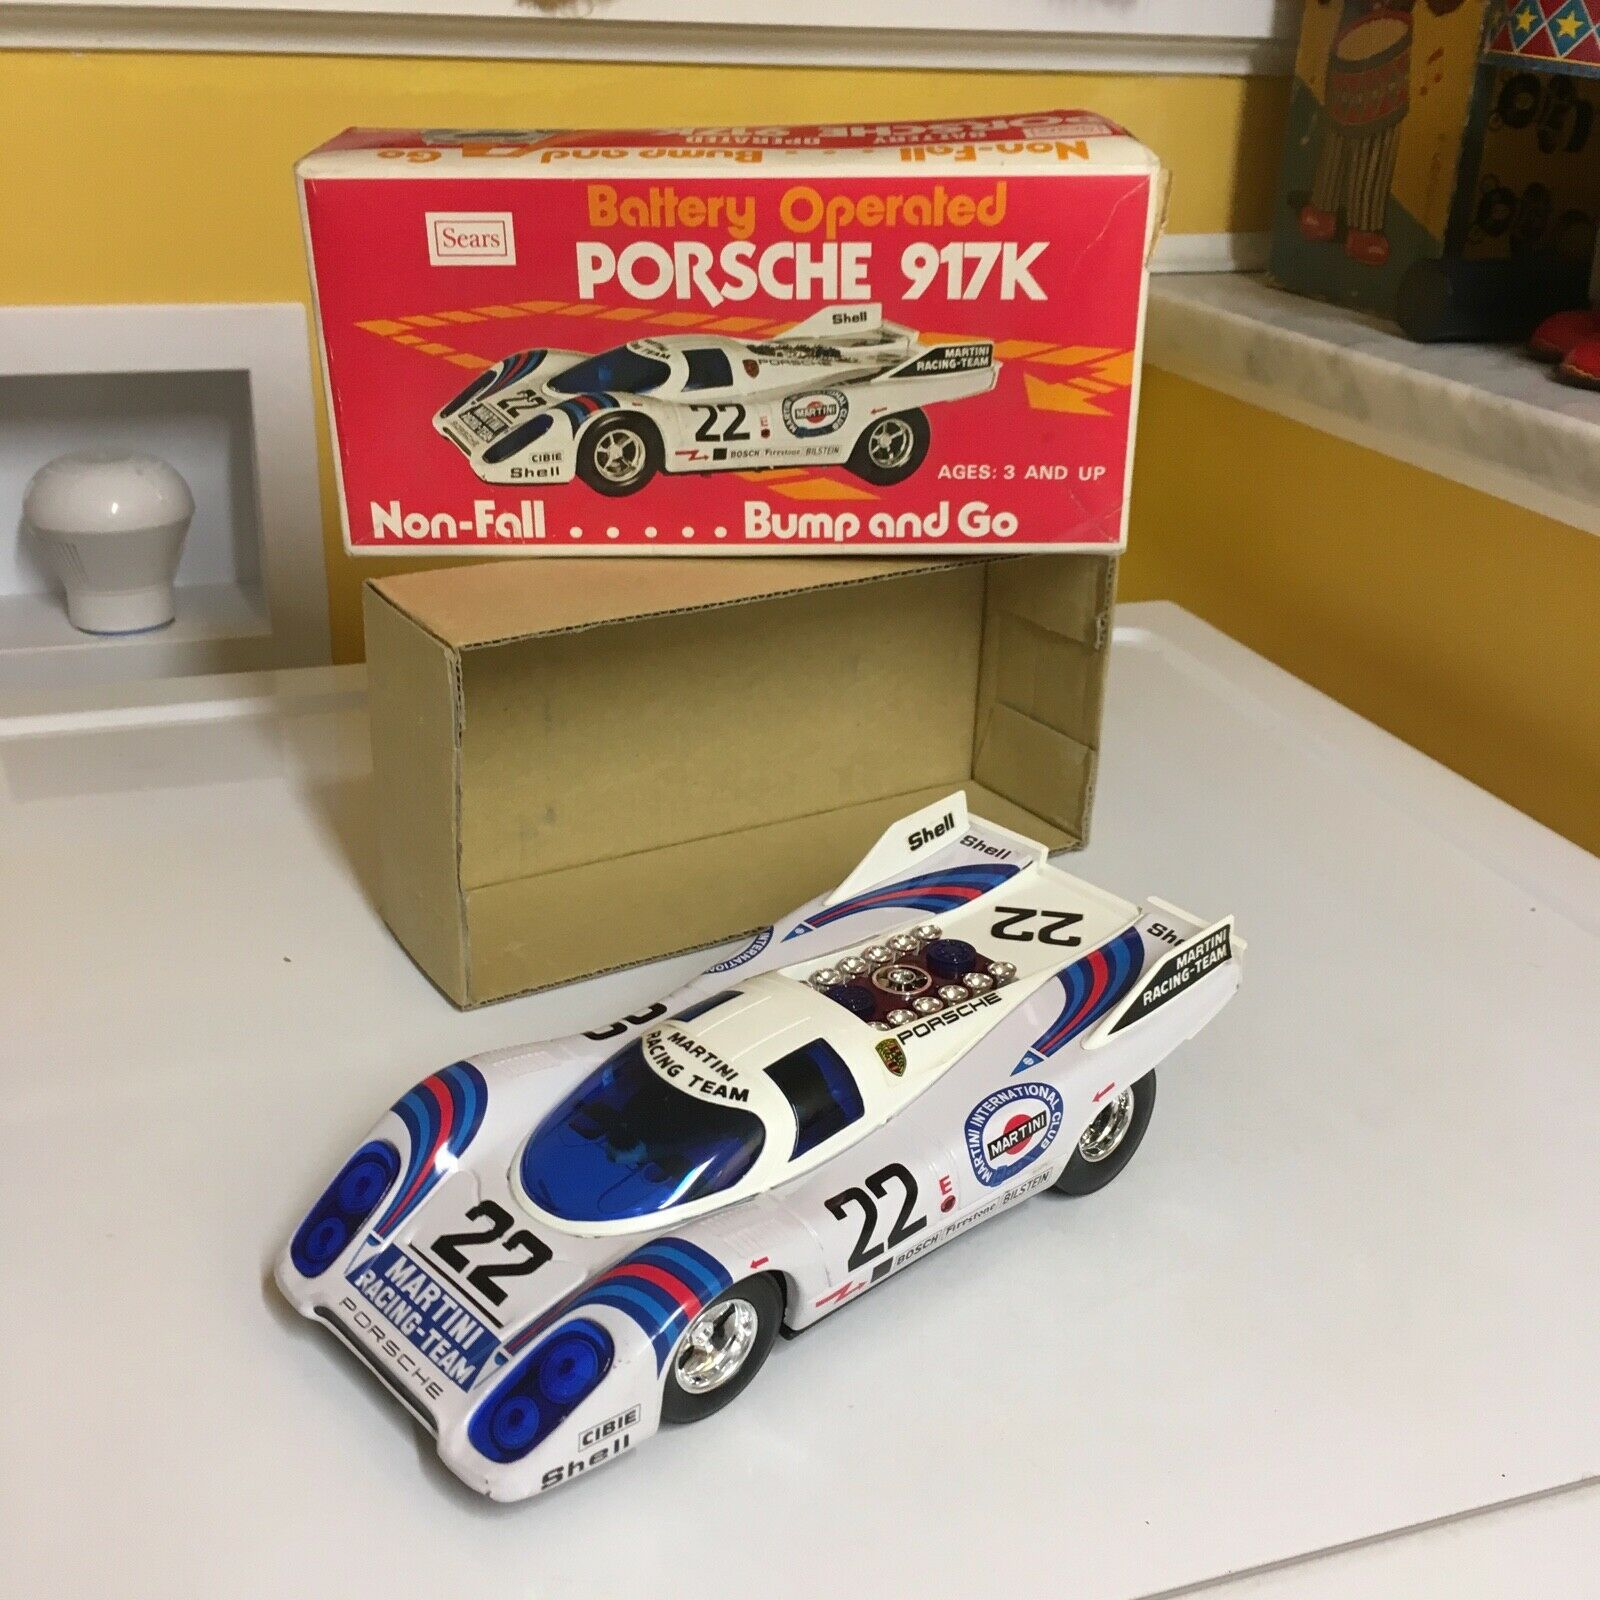 SEARS TAIYO TIN NON-FALL NON-FALL NON-FALL & BUMP AND GO ACTION PORSCHE 917K FULLY WORKING W BOX  1eefa1